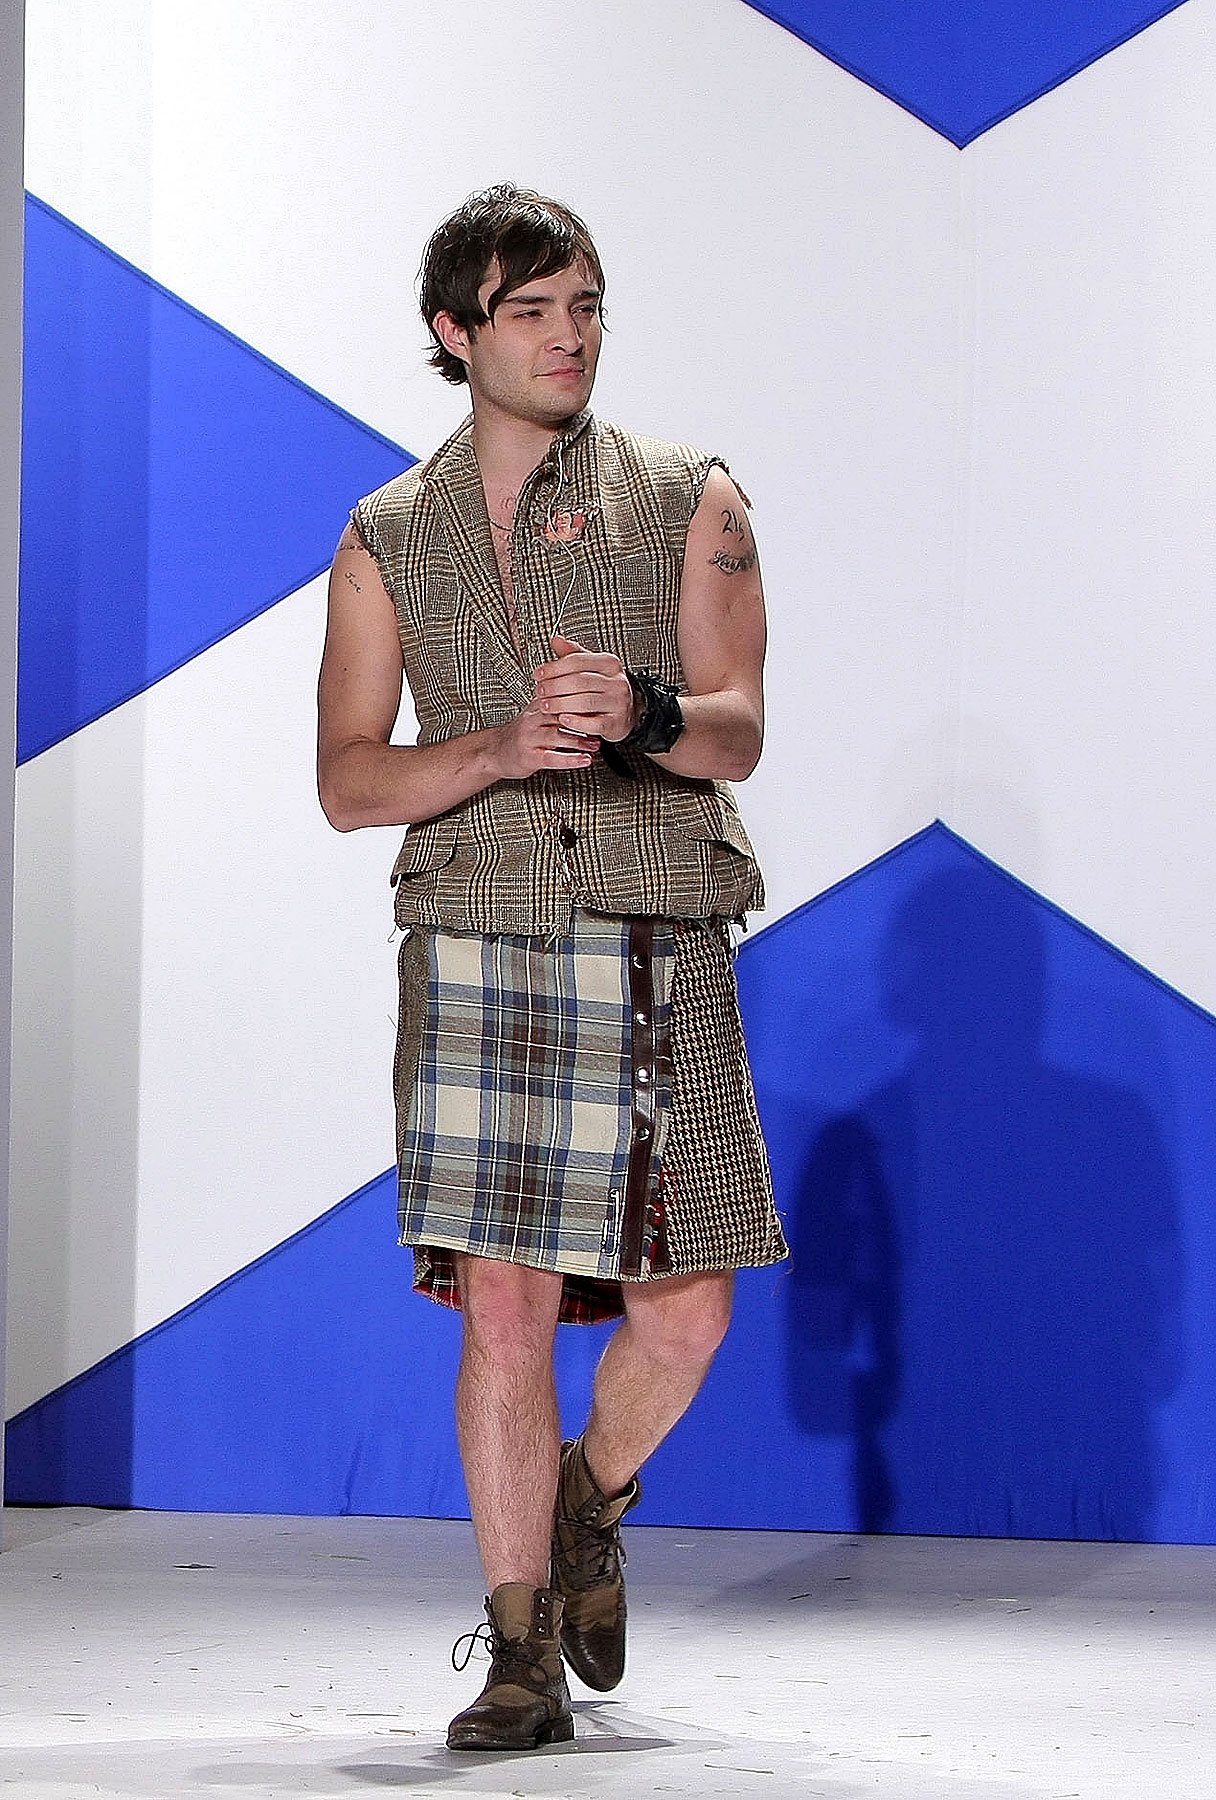 Celebs Are Rad in Plaid For 'Dressed to Kilt'